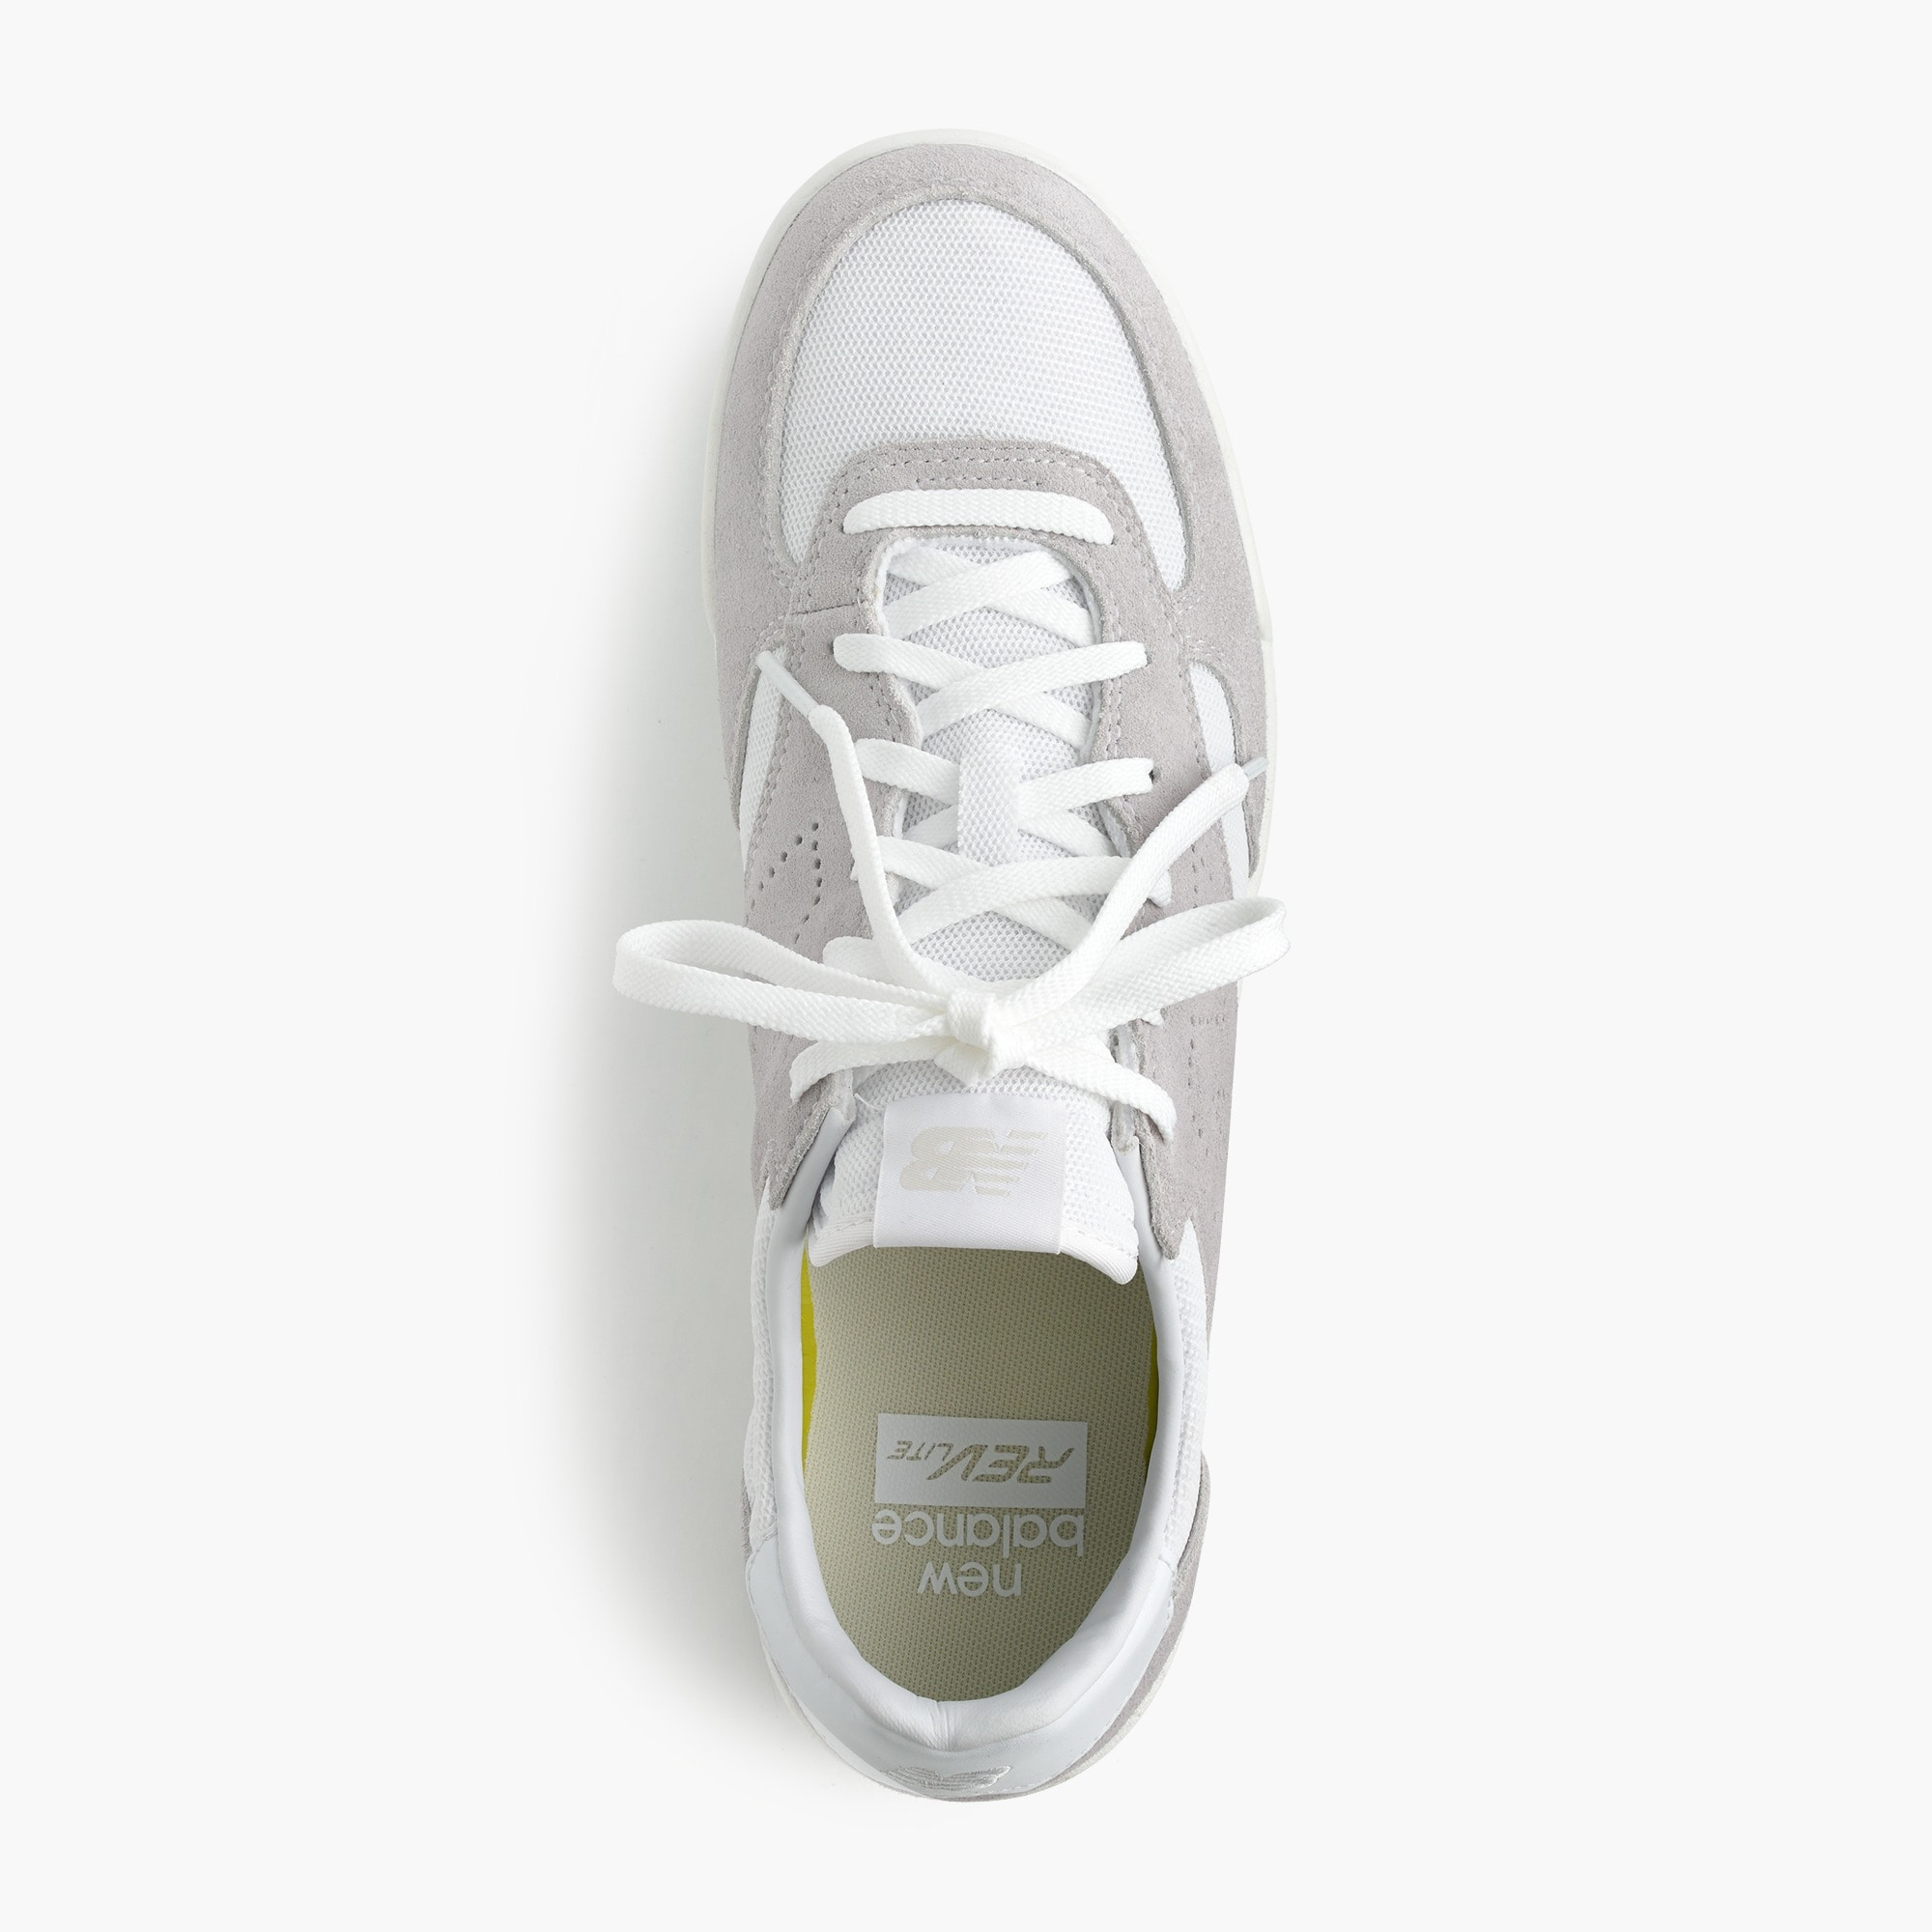 New Balance® CRT300 sneakers in white